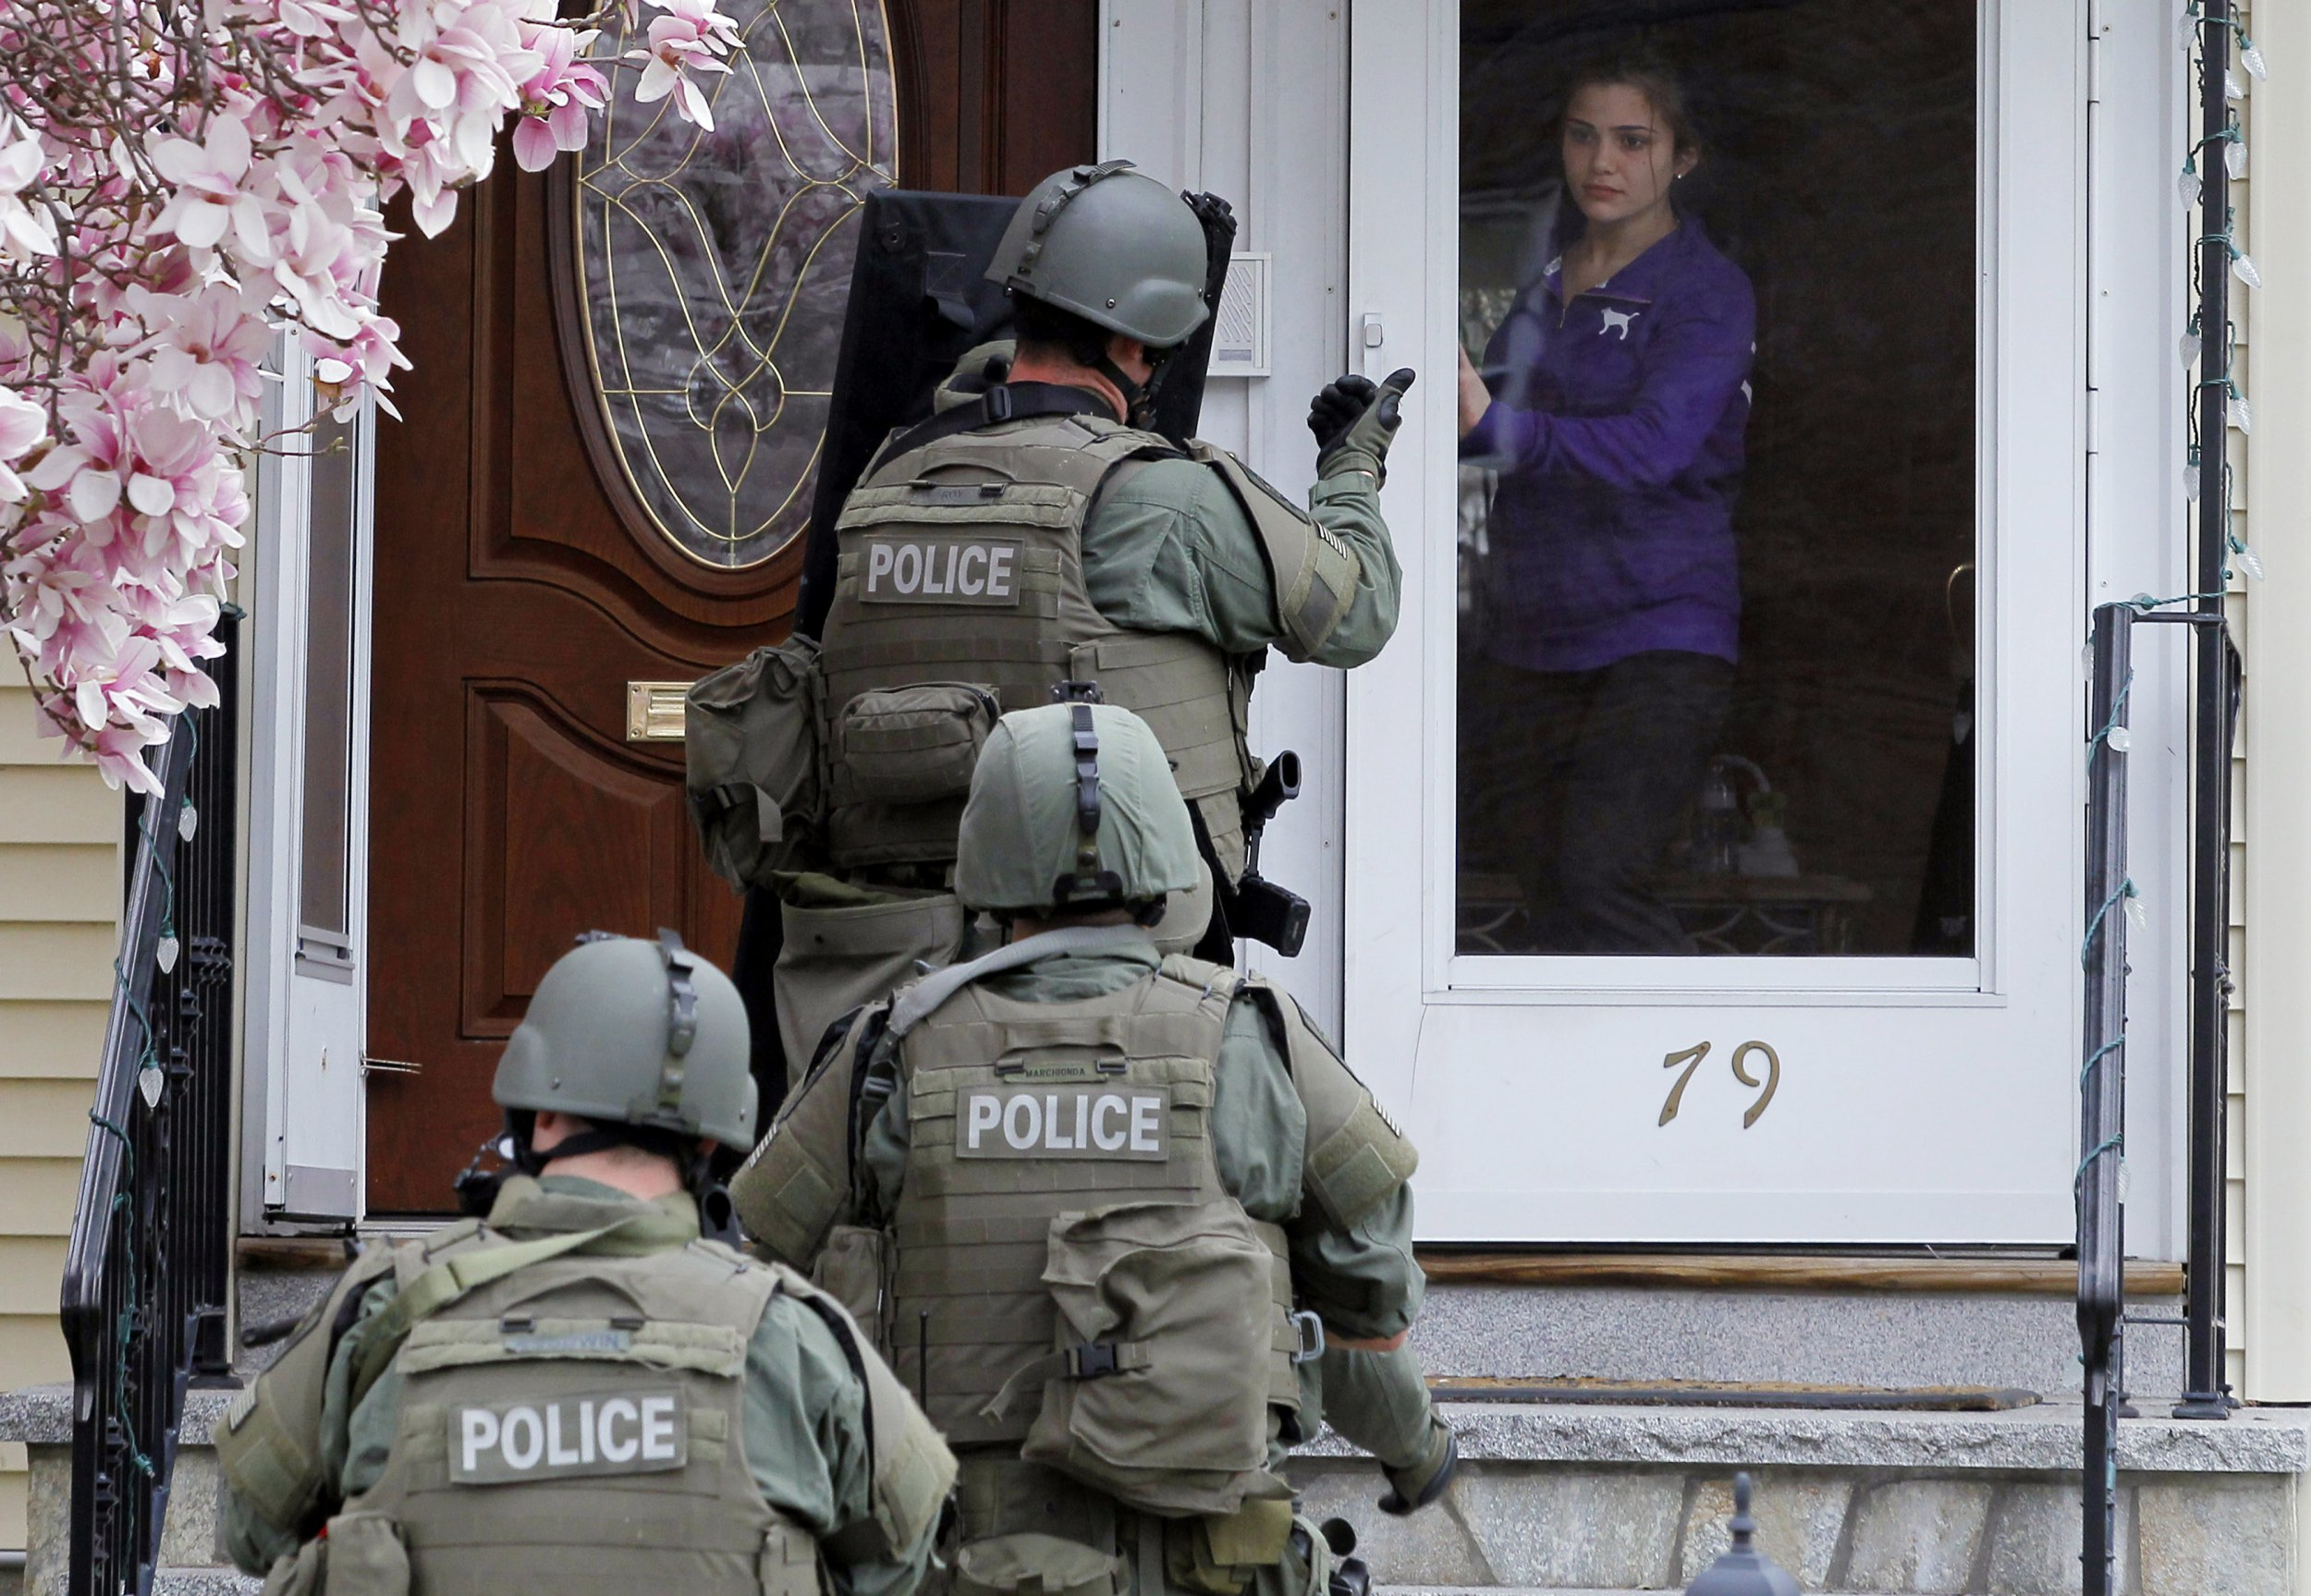 SWAT Raids Wrong Home, Holds Family At Gunpoint—Owner